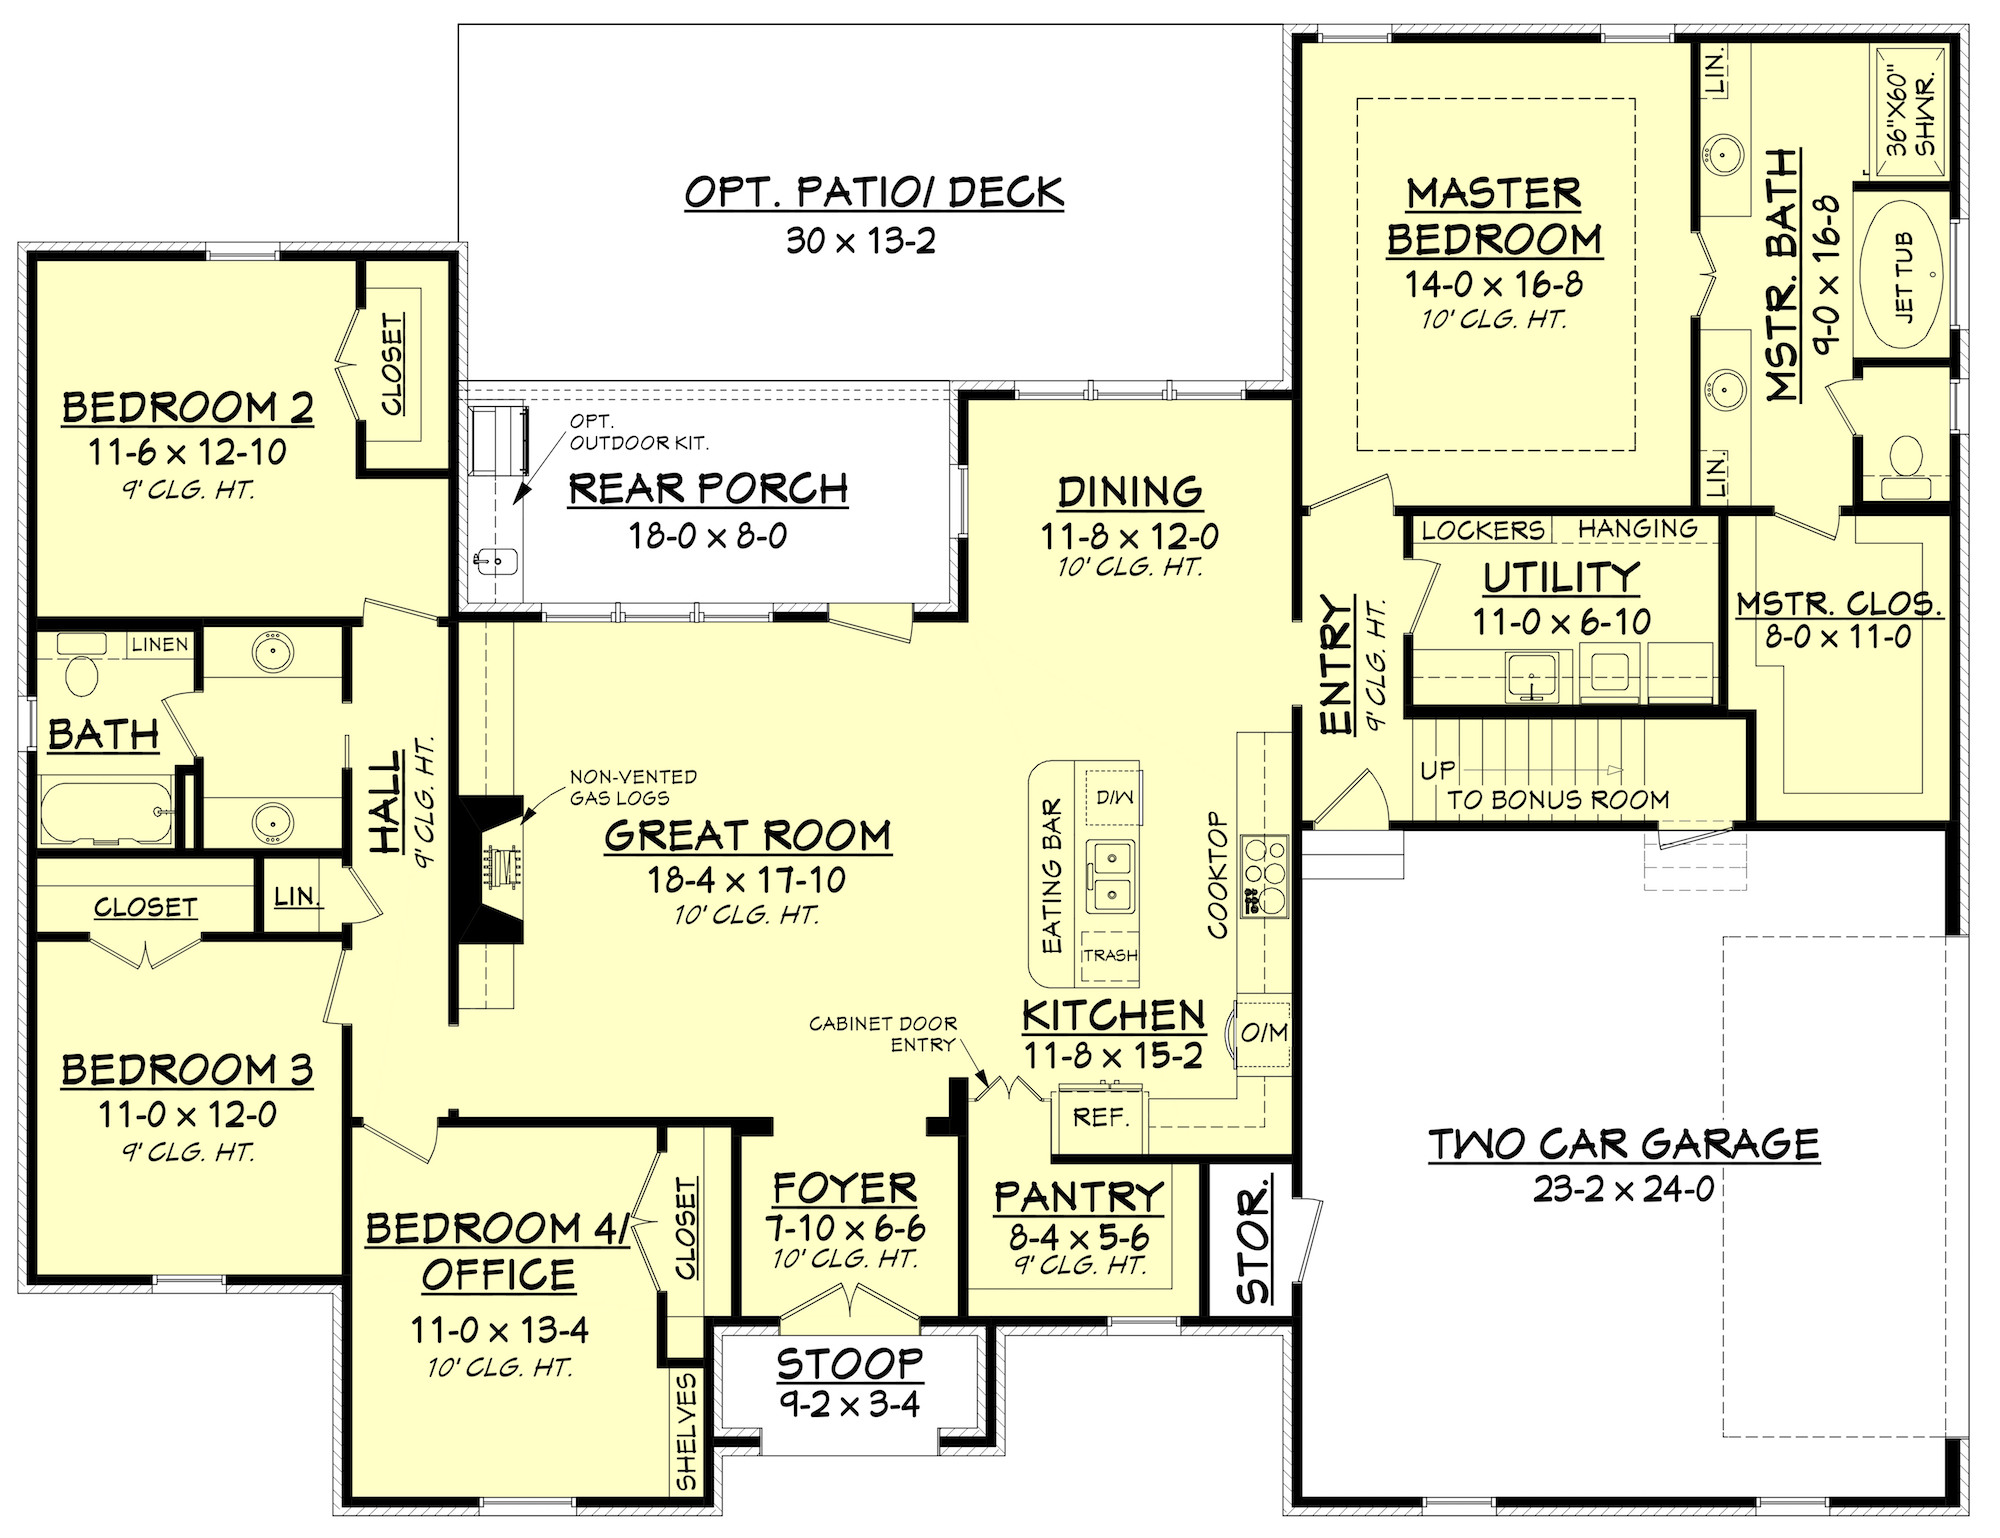 Acadian house plan 142 1154 4 bedrm 2210 sq ft home plan for Home designs and floor plans